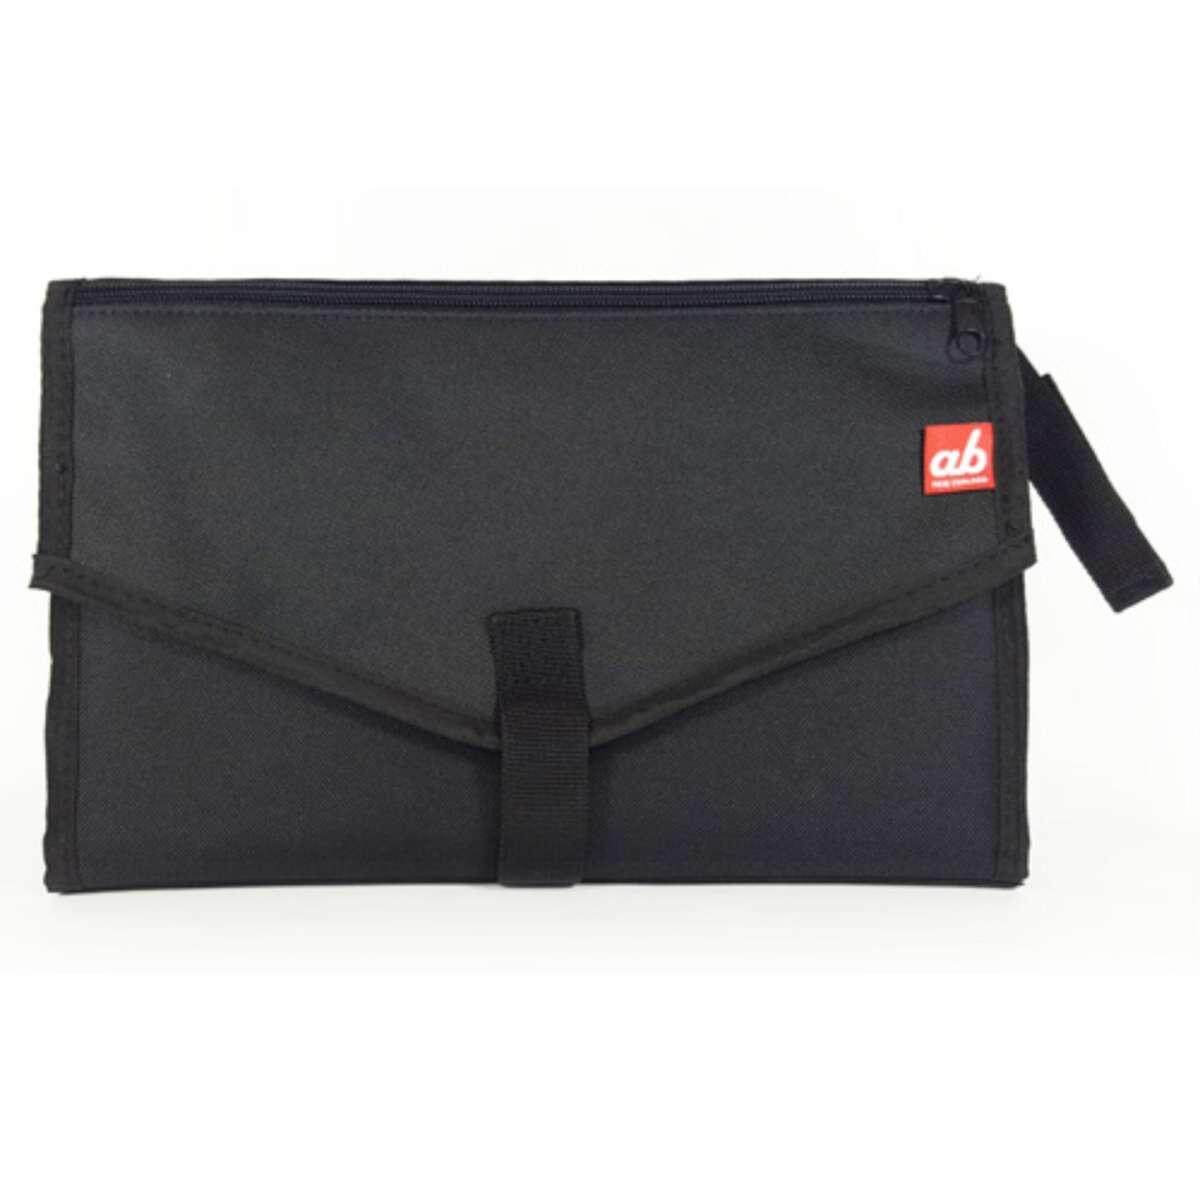 ab New Zealand Waterproof Washable Best Portable Diaper Changing Clutch